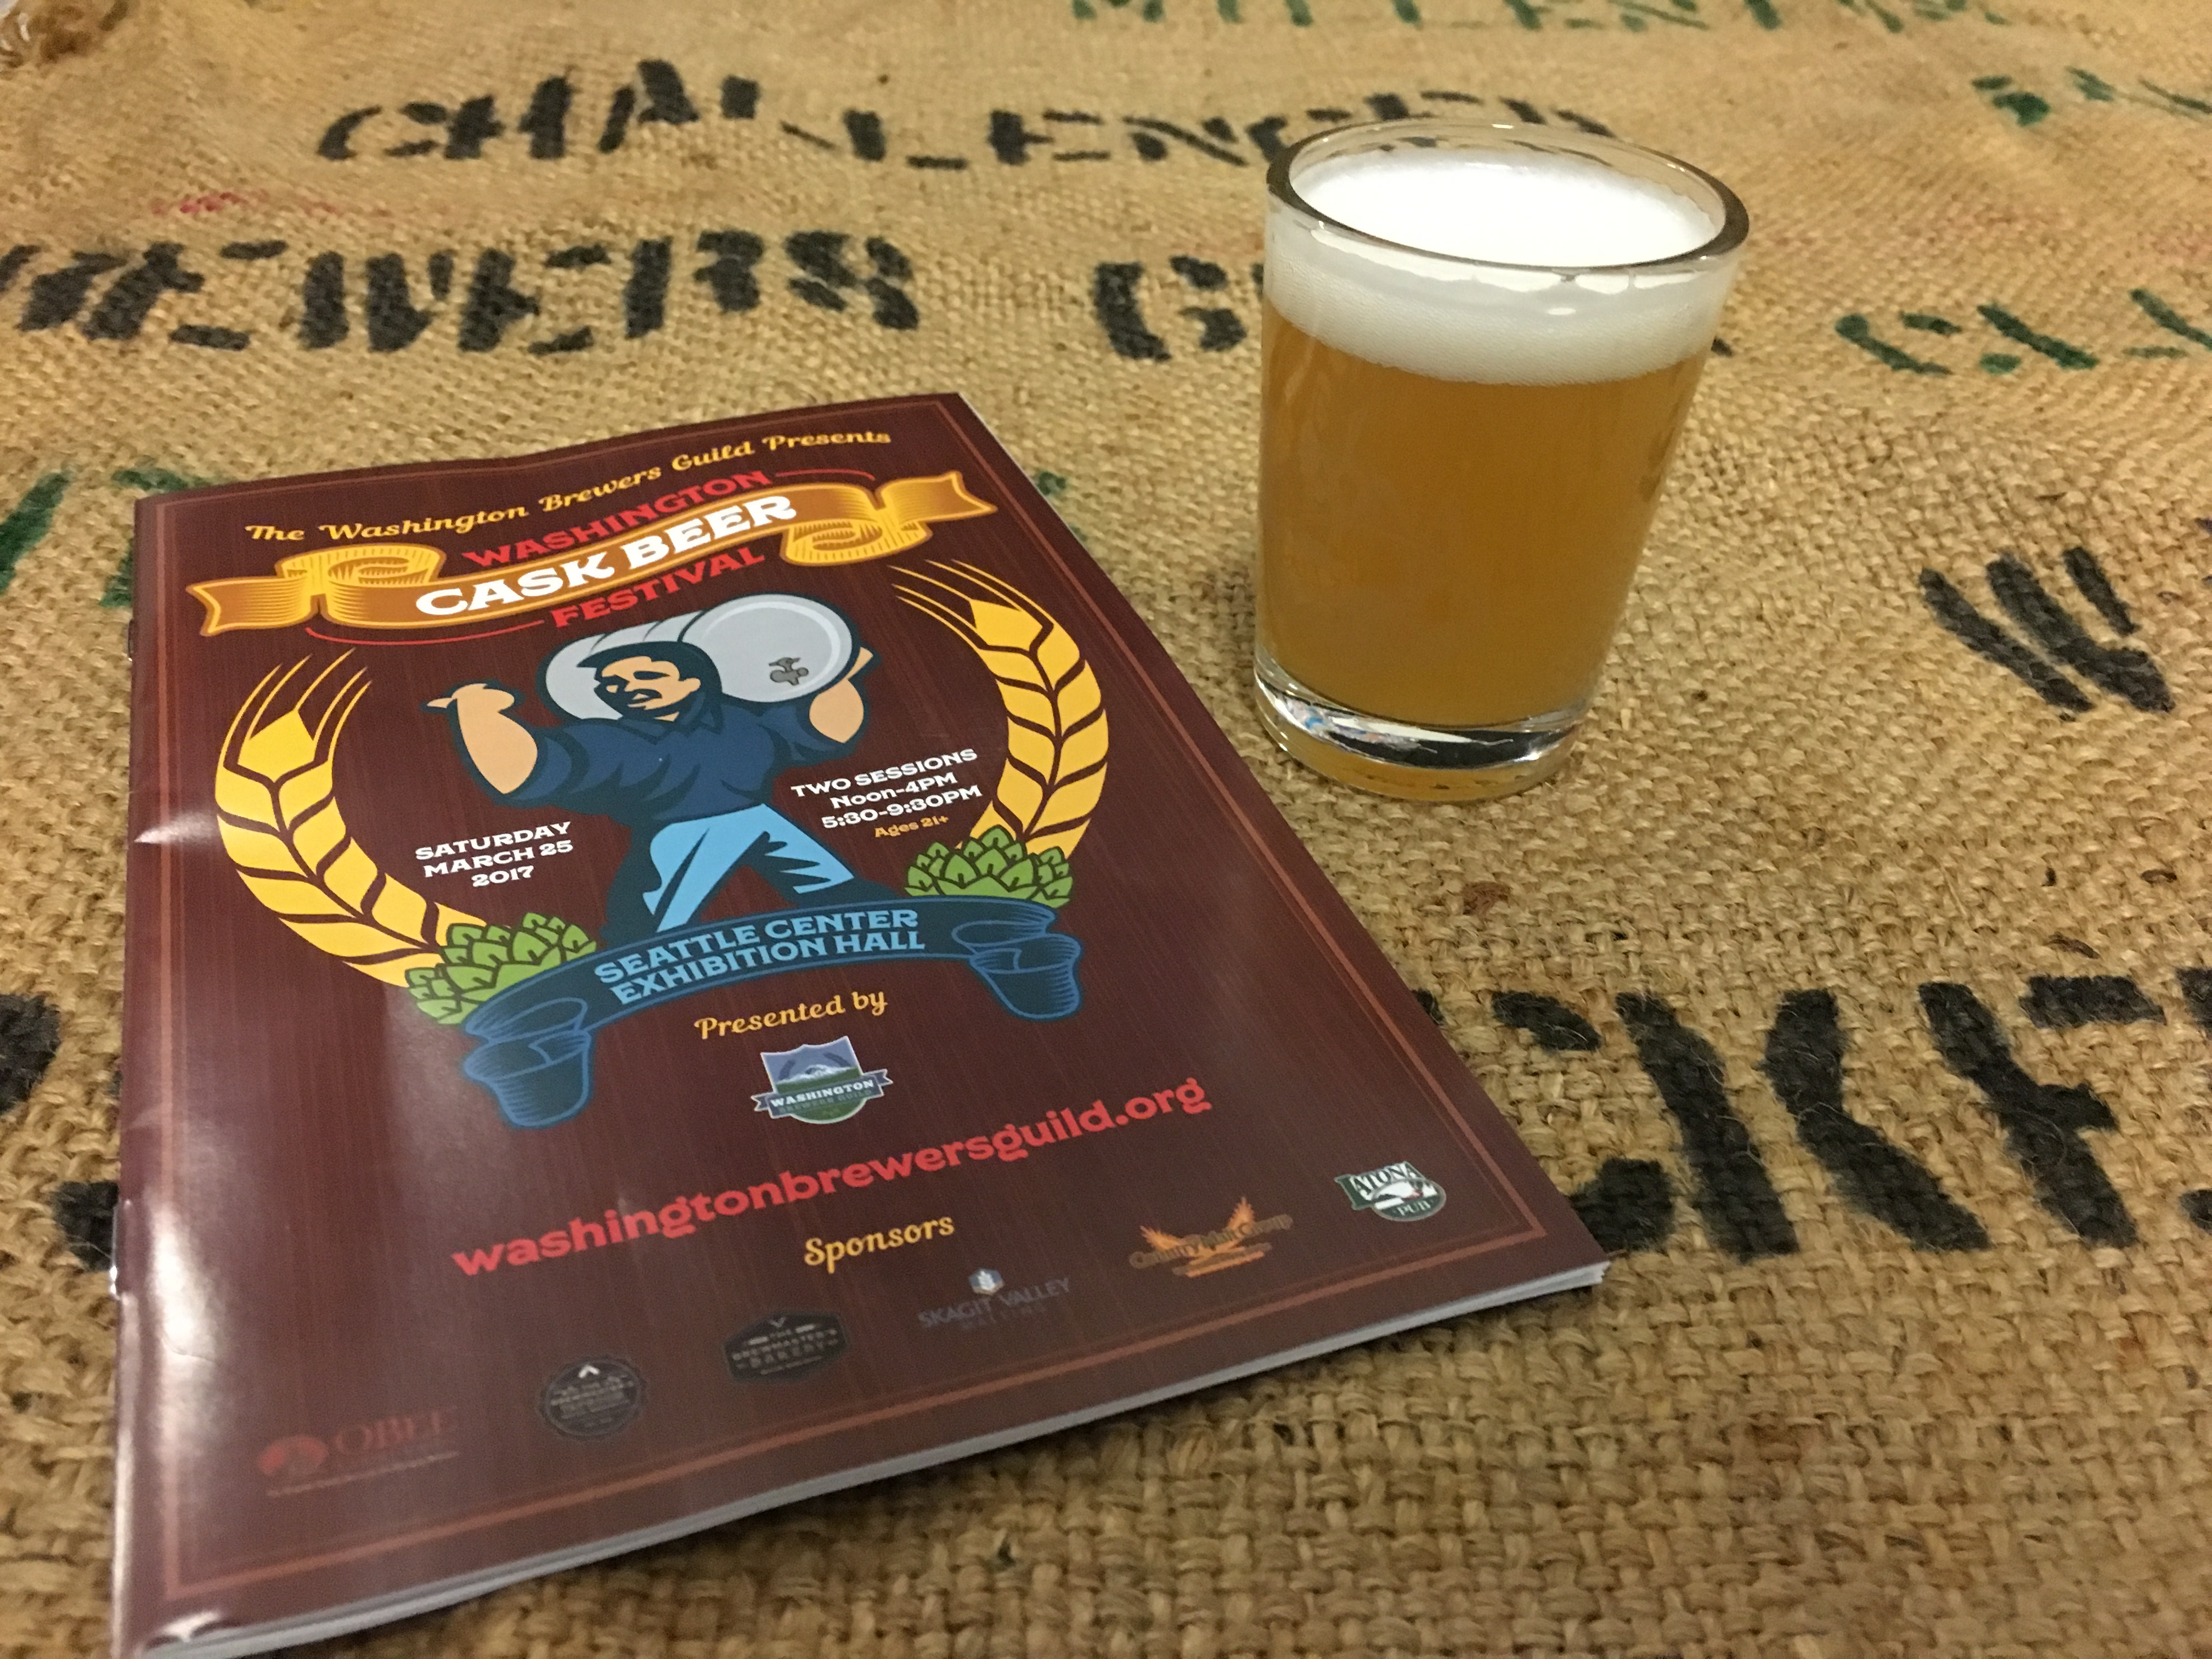 2017 Washington Cask Beer Festival was another favorite of ours. Its always worth making the trip to Seattle for this festival.